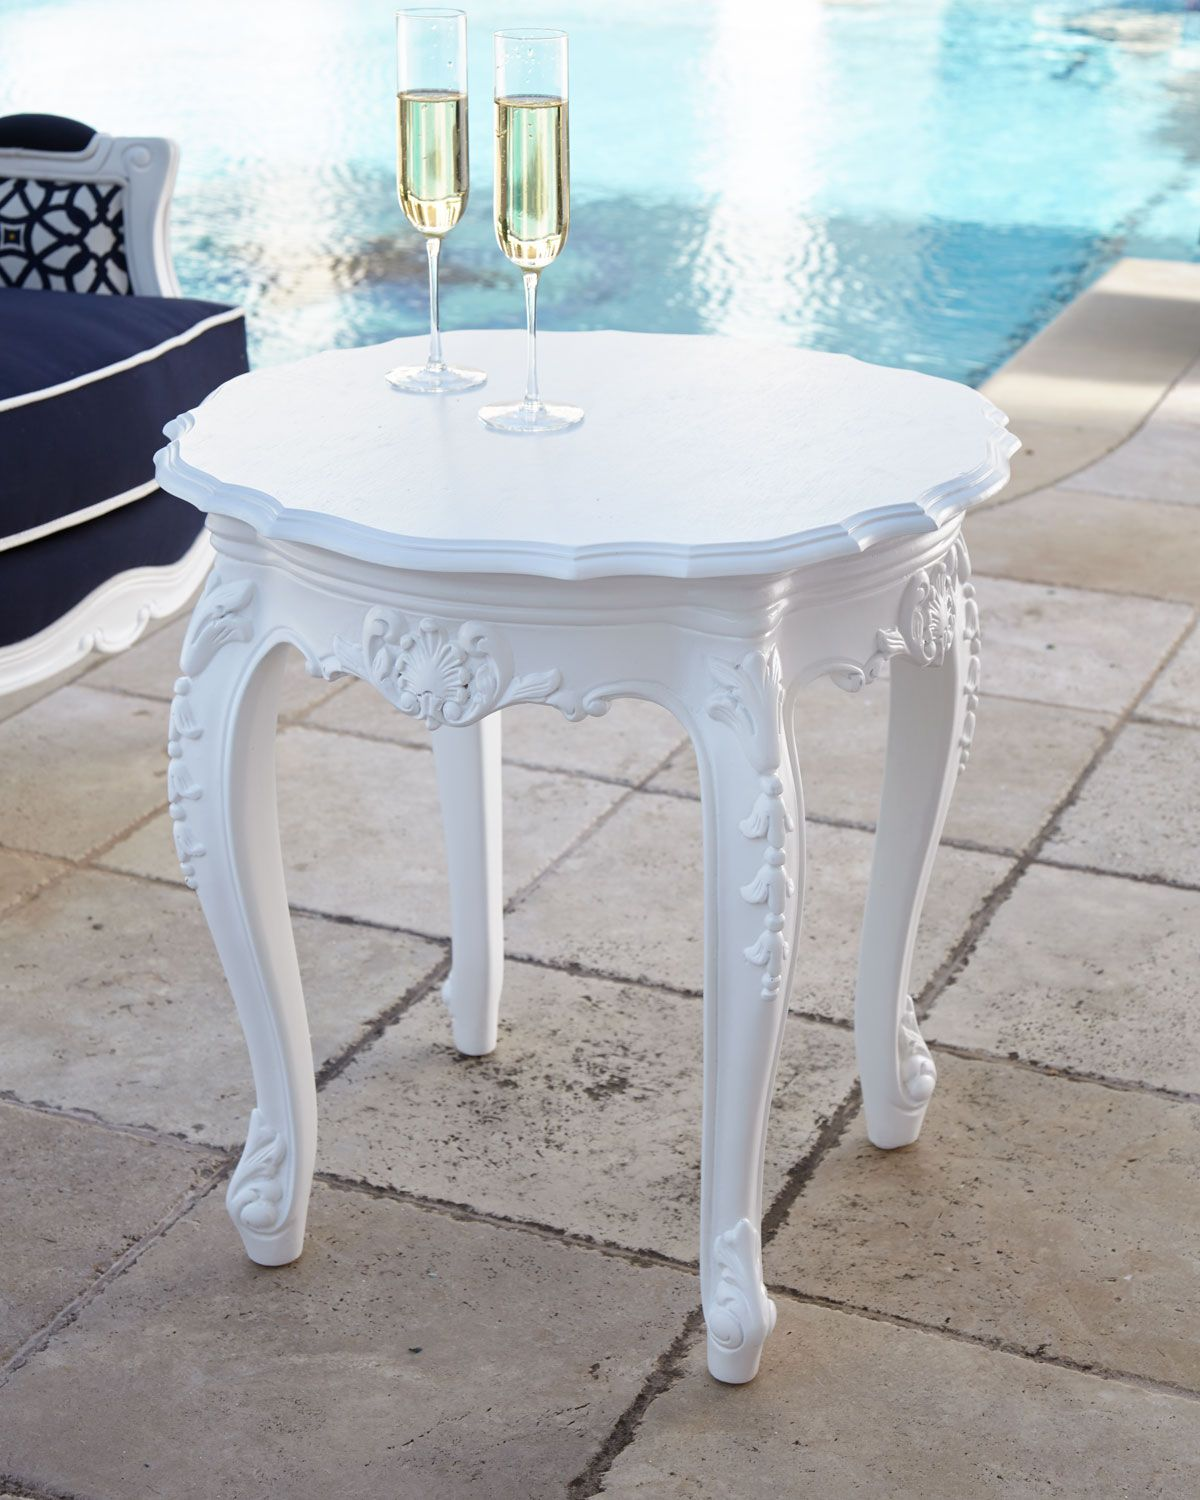 condo outdoor furniture dining table balcony. Outdoor Dome Chair And Matching Items · Luxury Dining TablesCondo BalconyOutdoor Condo Furniture Table Balcony